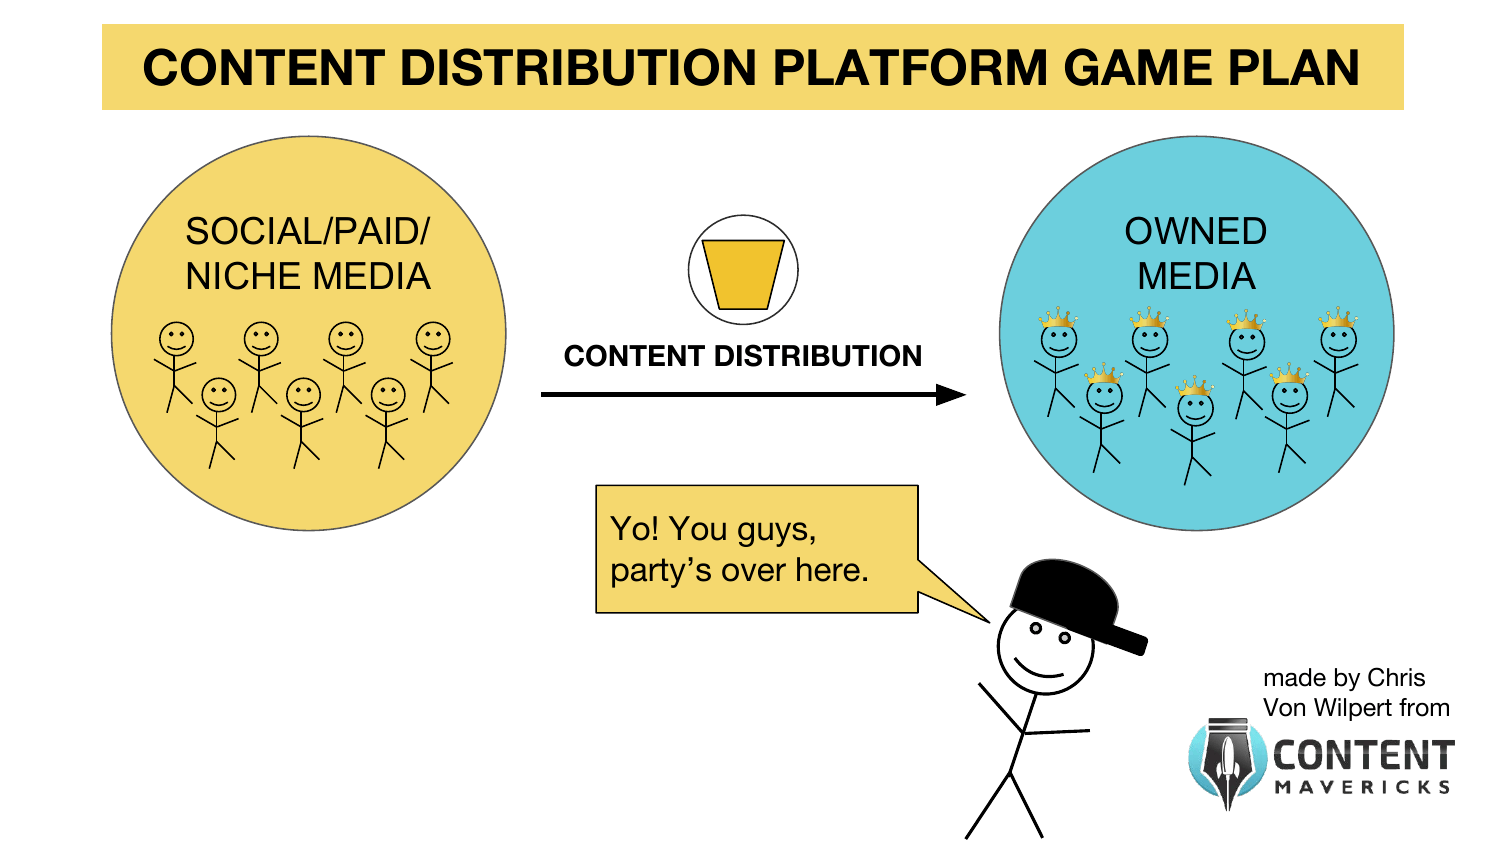 content distribution platform game plan image